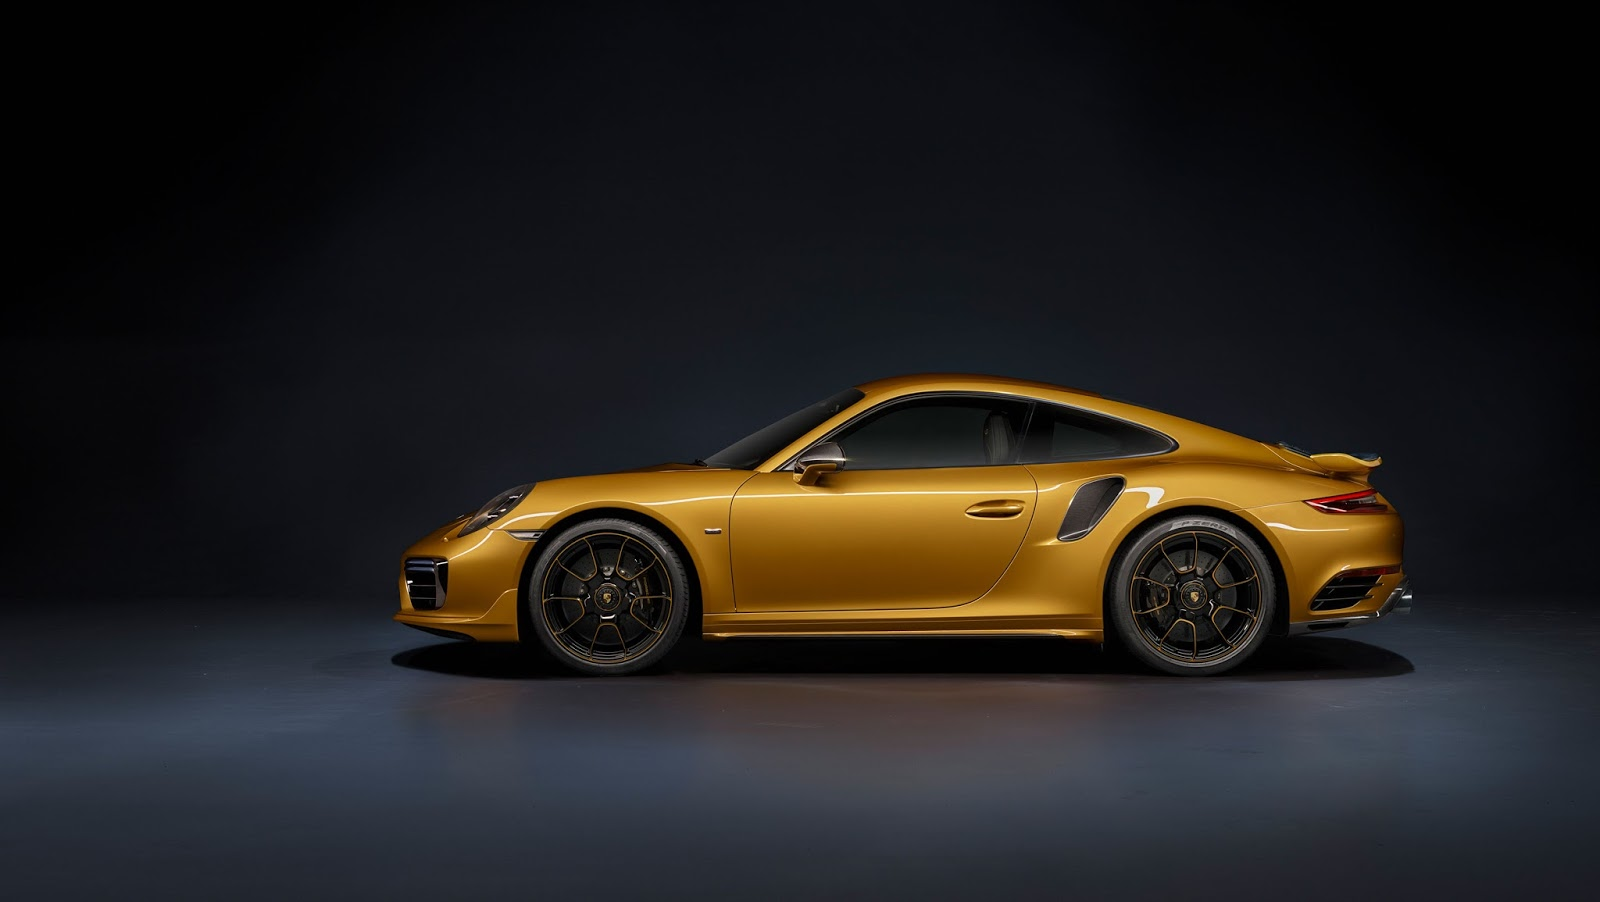 motoring malaysia limited edition porsche 911 turbo s. Black Bedroom Furniture Sets. Home Design Ideas